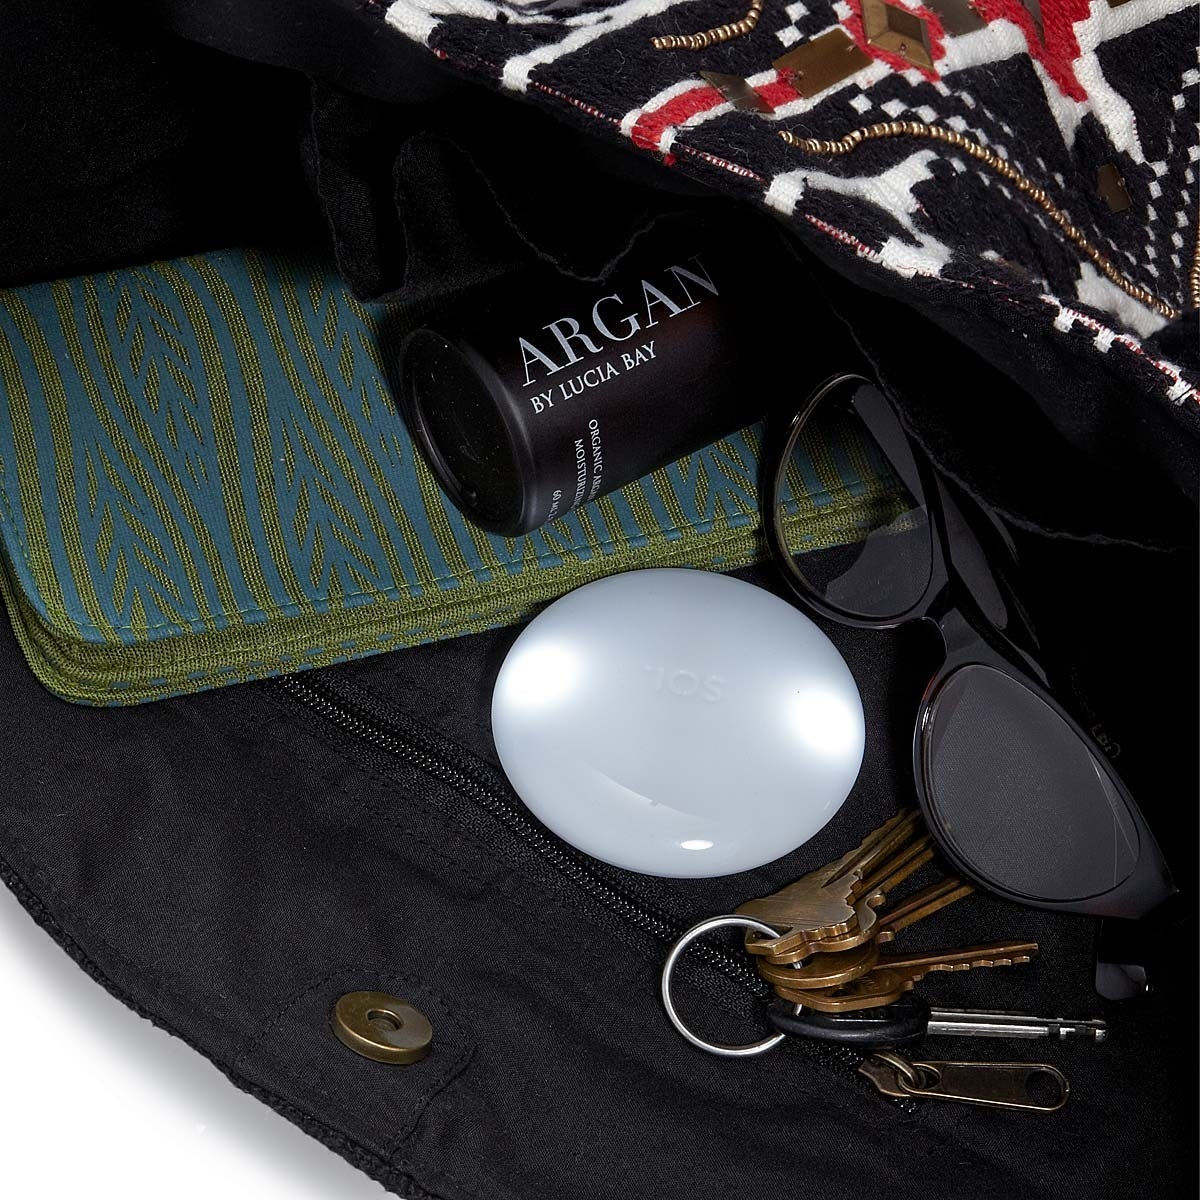 The round light in a purse, approximately the size of a makeup compact